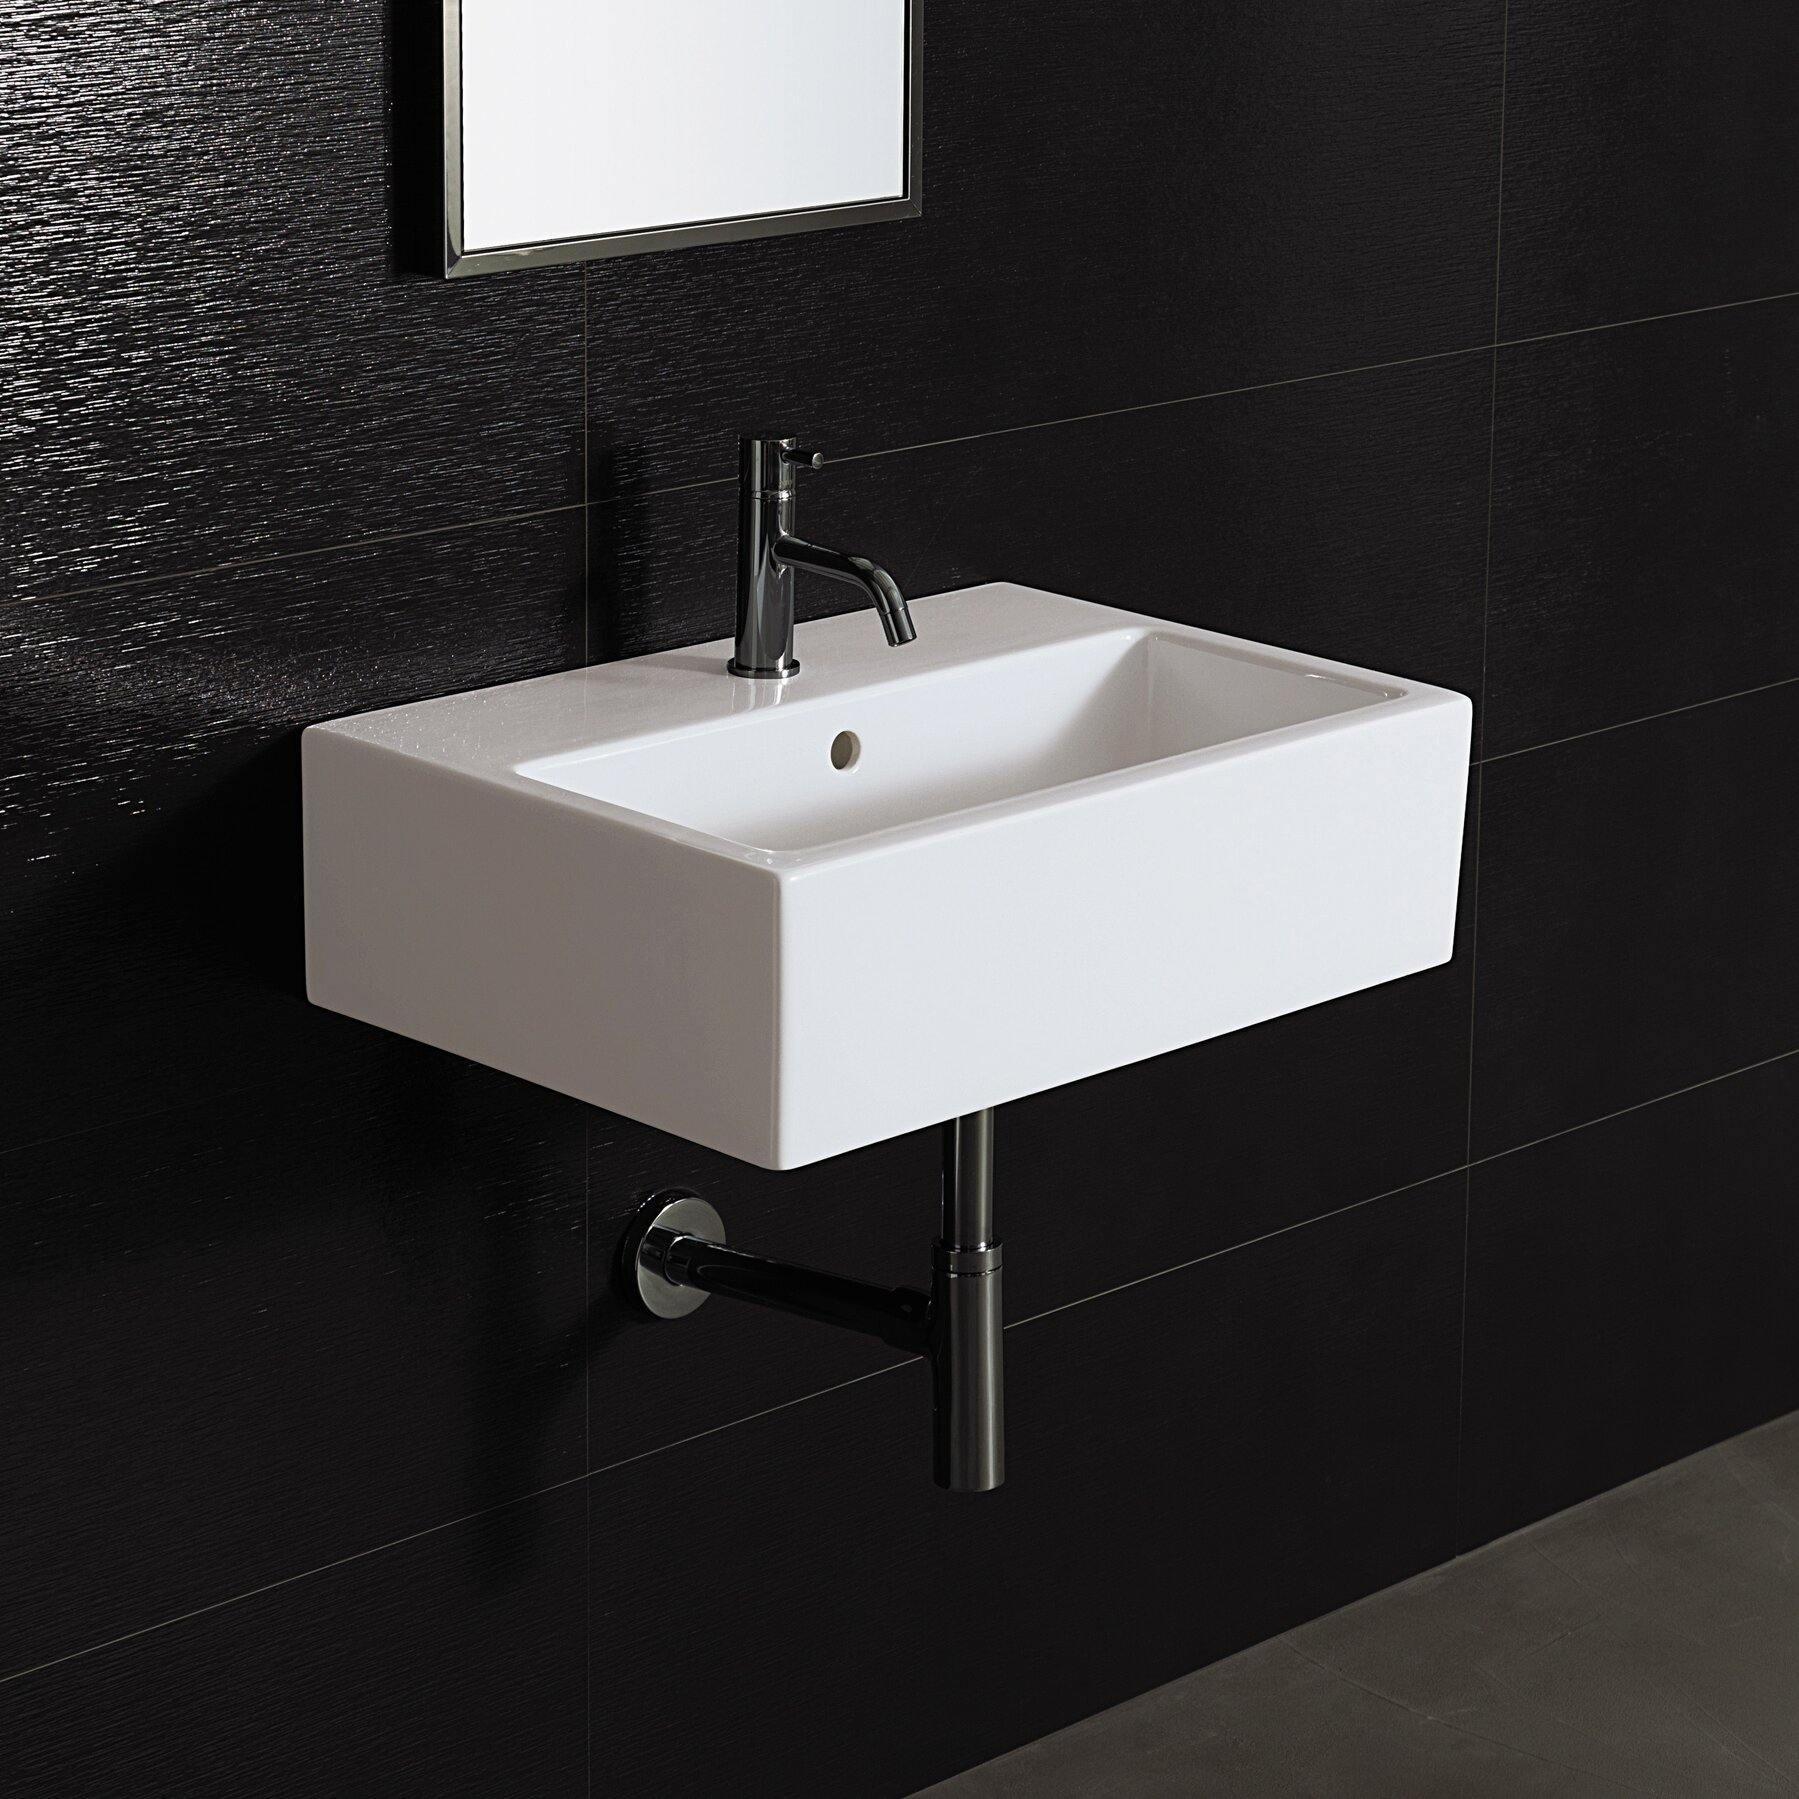 Bathroom Wall Mount Sink : Bissonnet Area Boutique Wall Mount Bathroom Sink & Reviews Wayfair